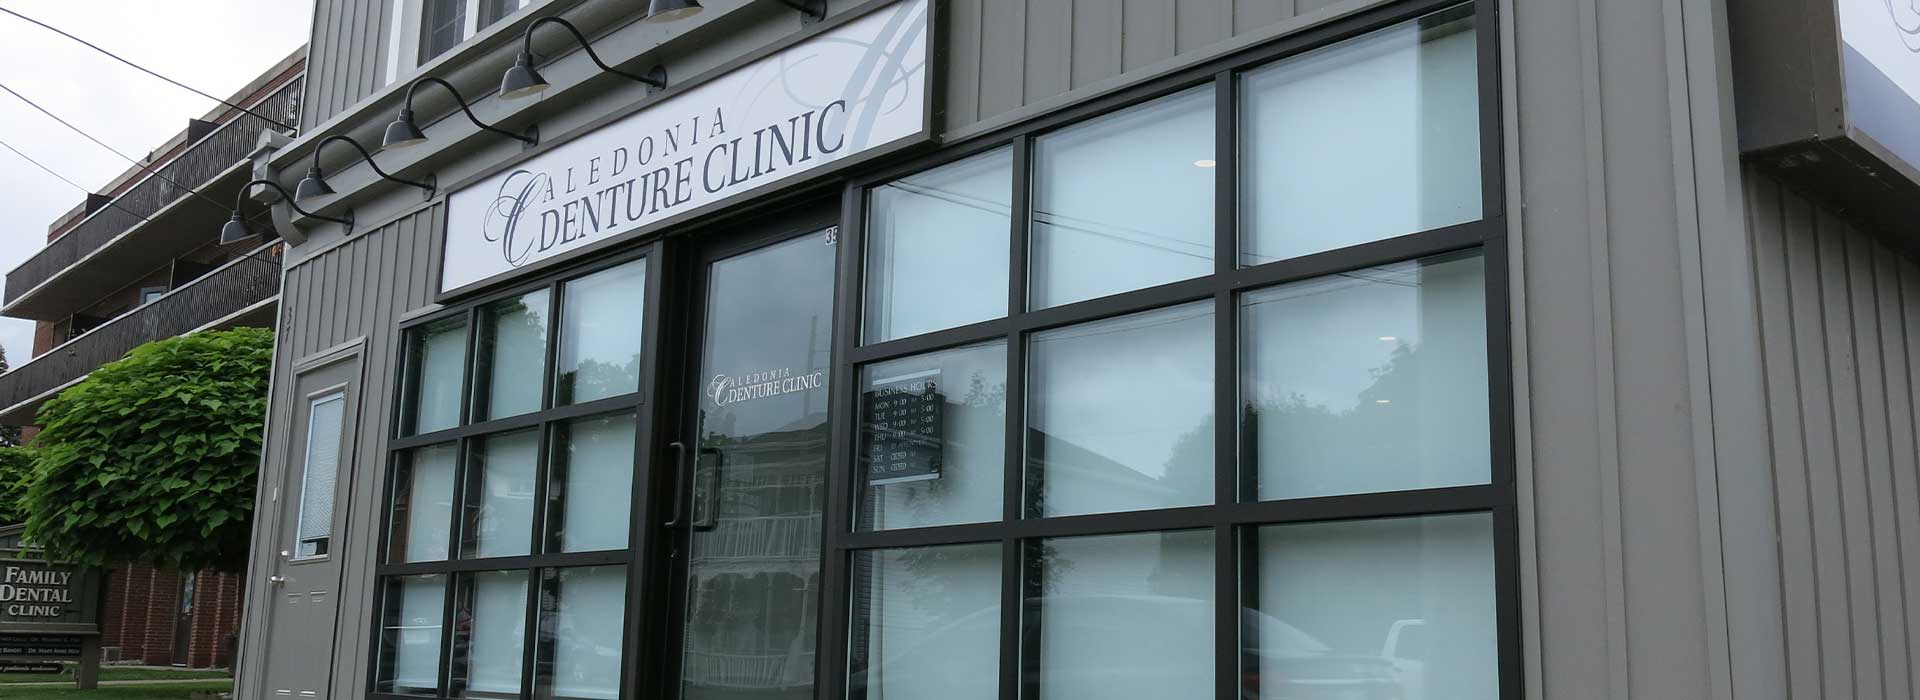 Exterior image of front of Caledonia Denture Clinic